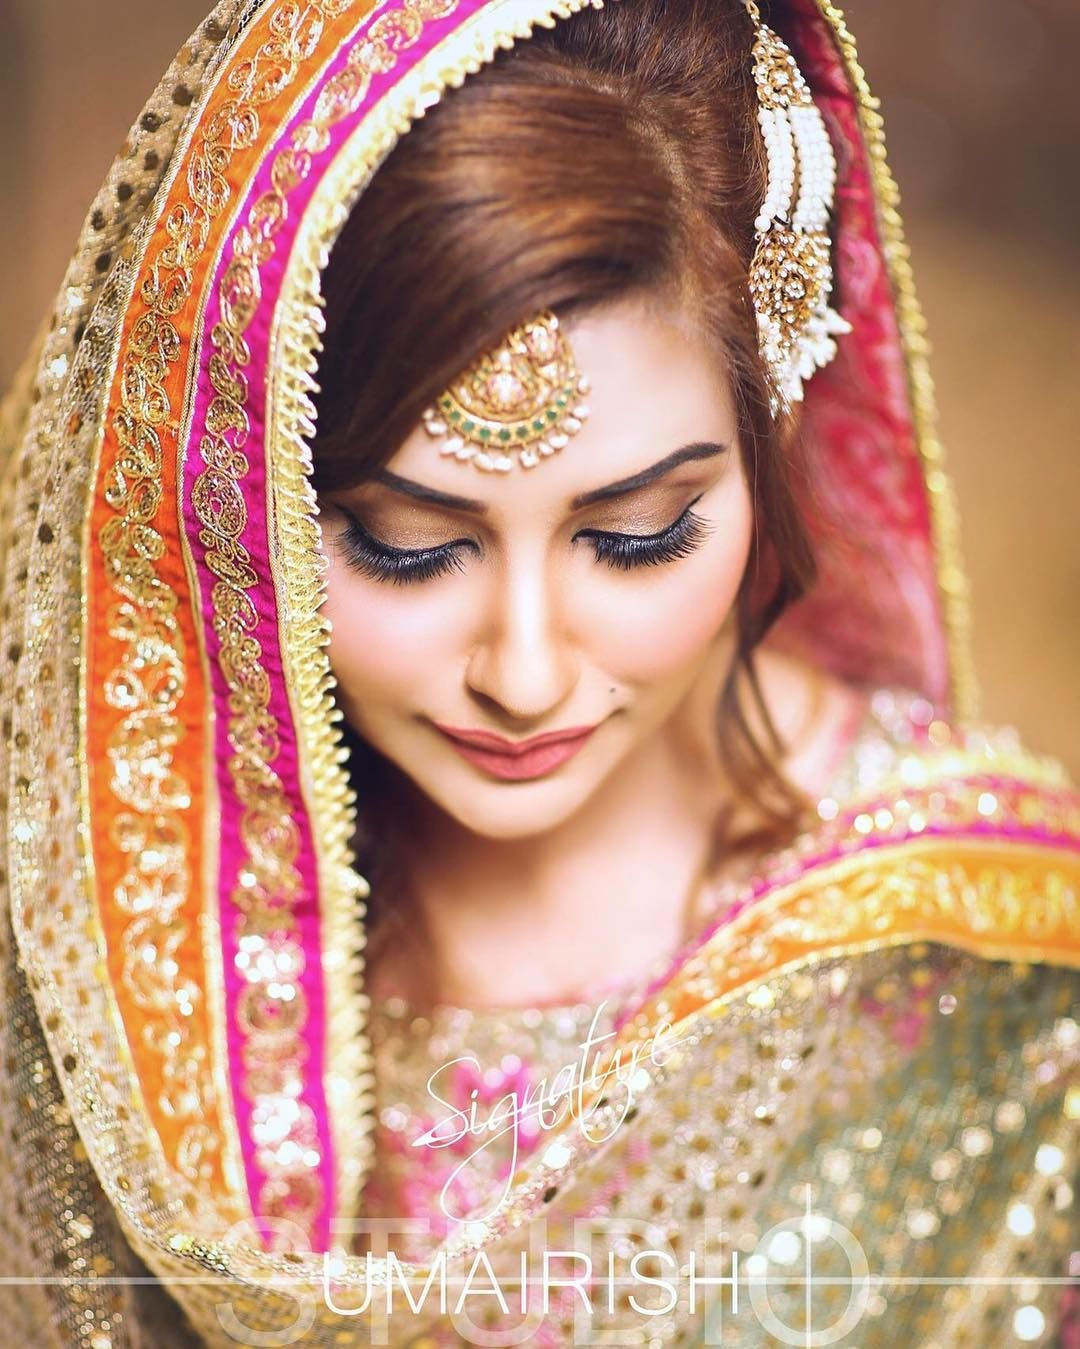 Pakistani Weddings. Umairish Photography